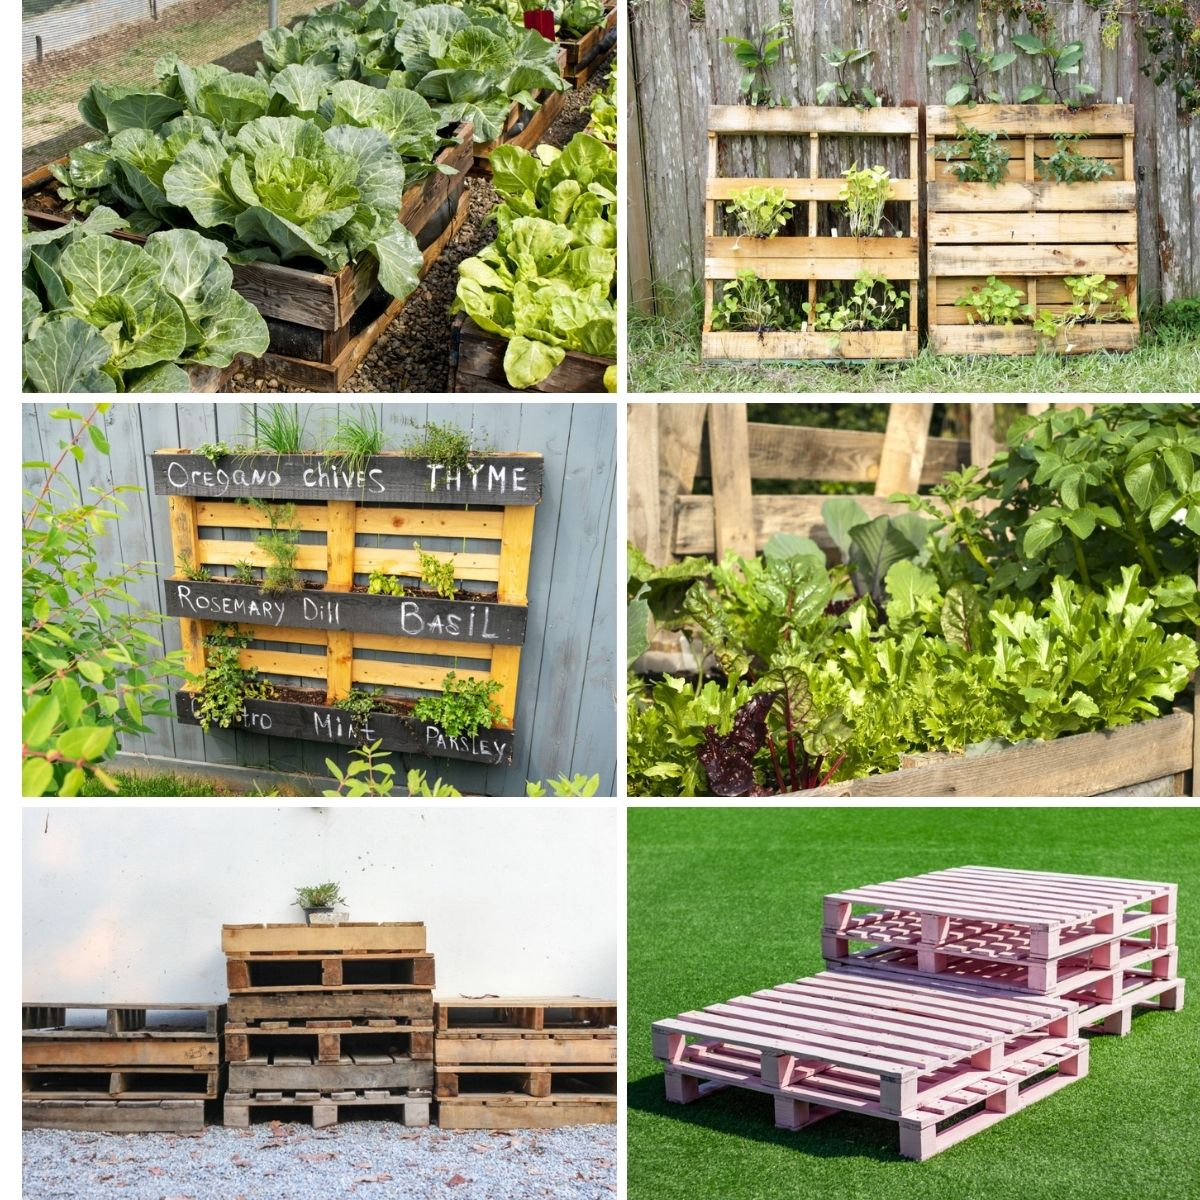 Pallet garden images from the content formed as a collage.